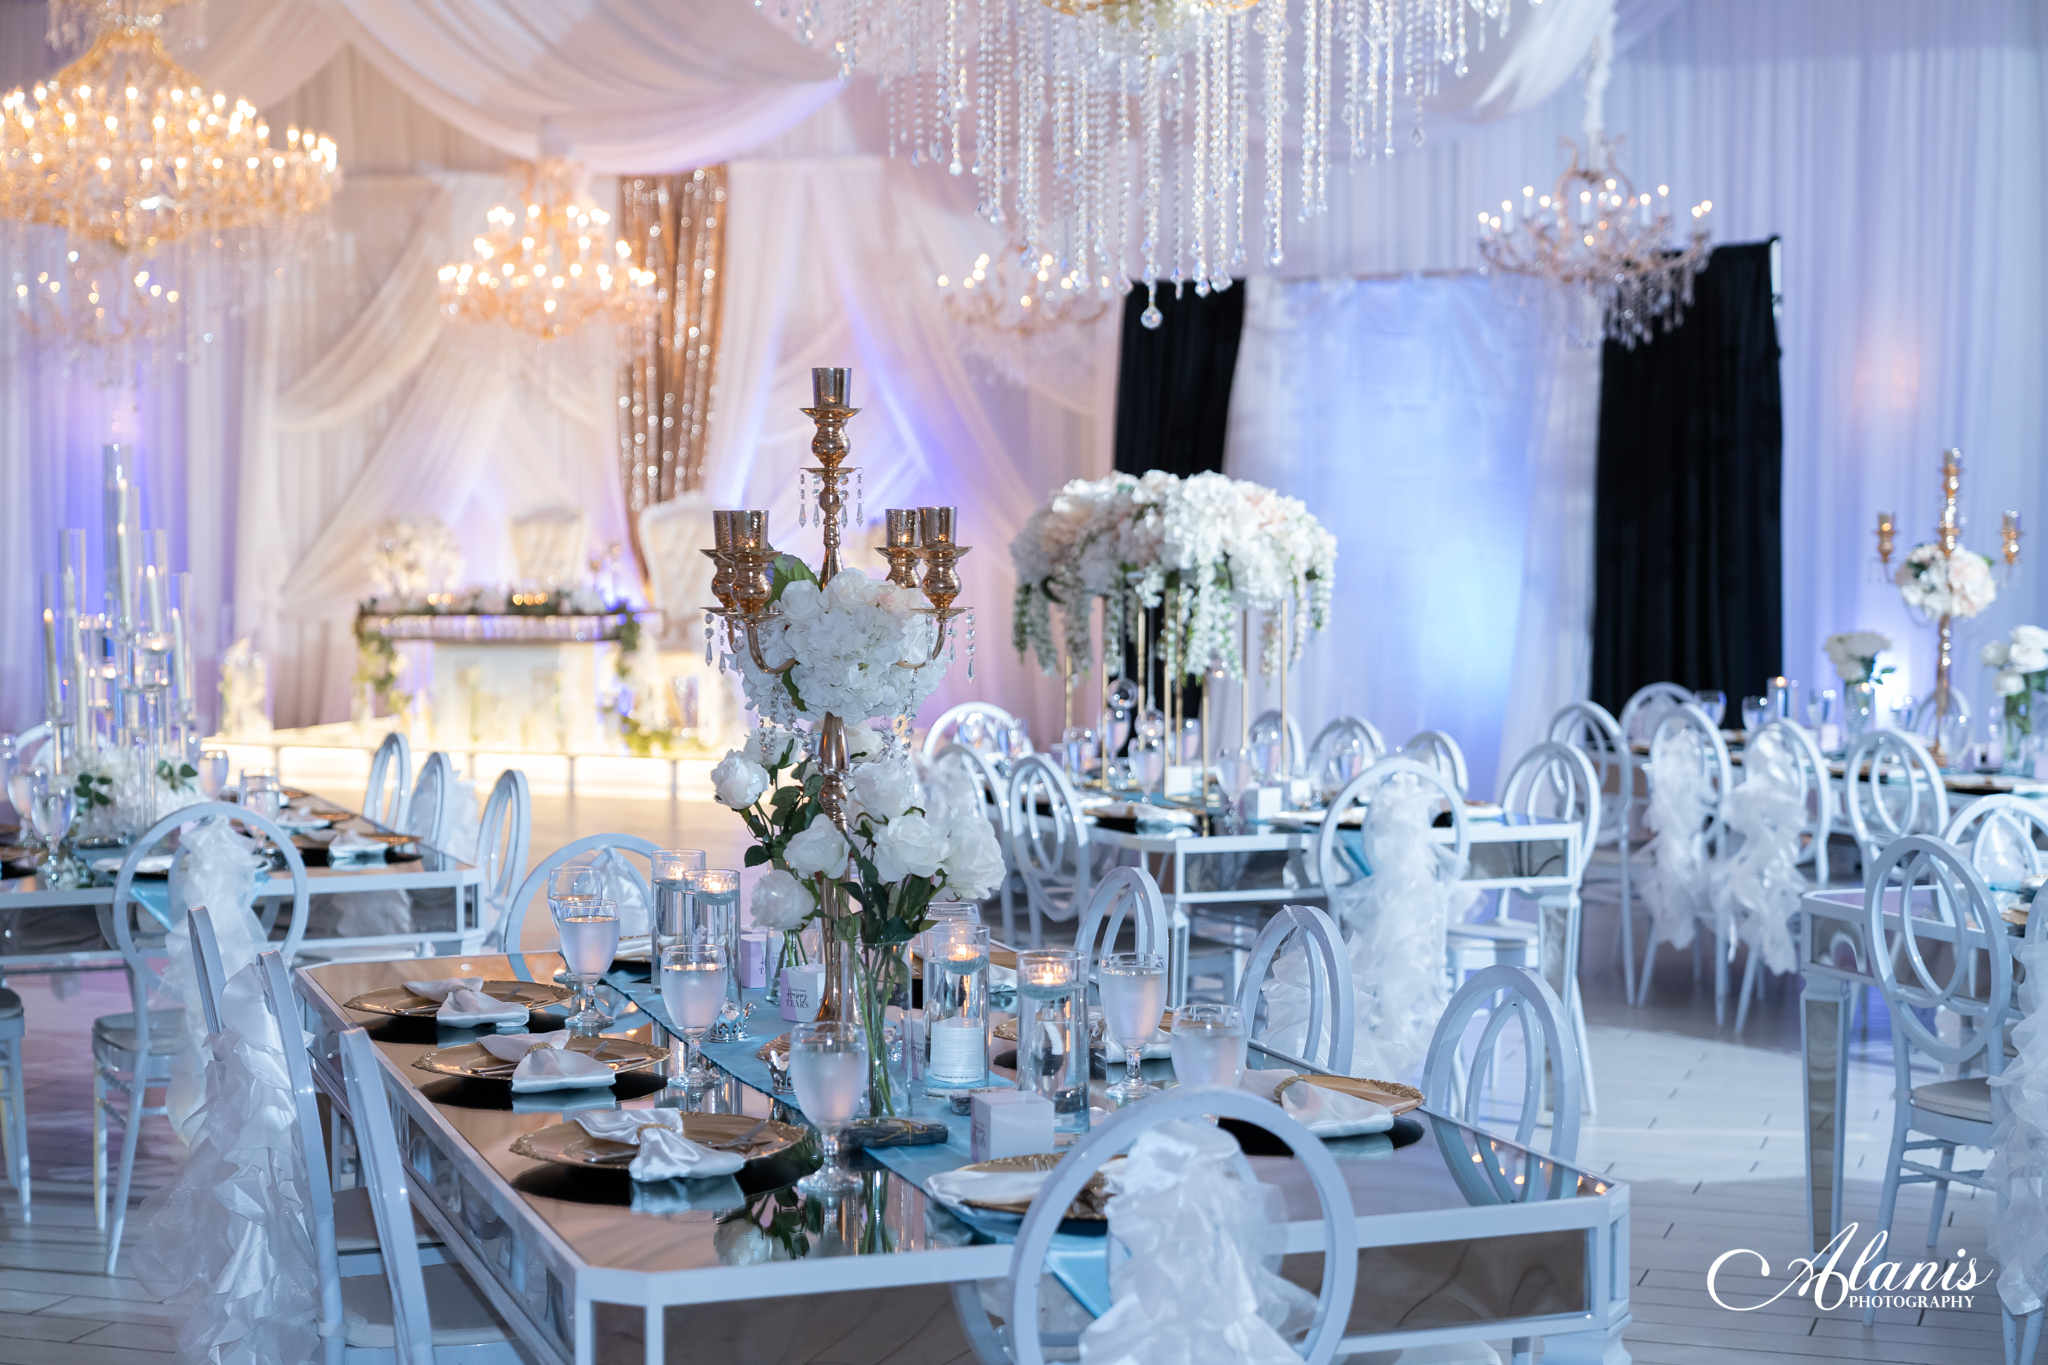 LeVenue ballroom and dining decor